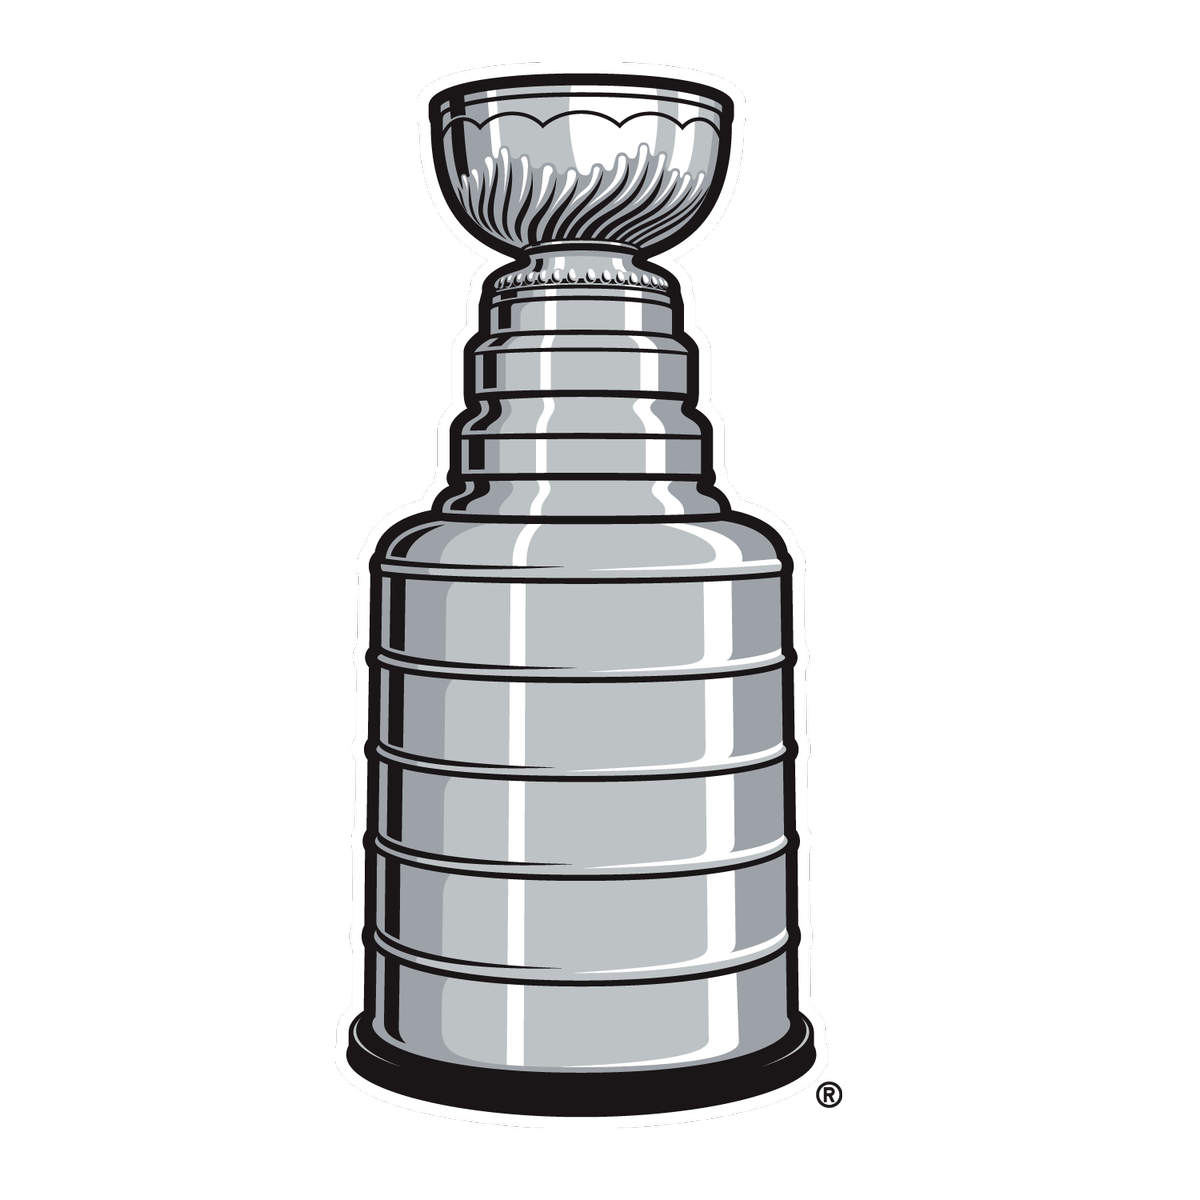 It S Only Fitting That The Greatest Trophy In All Of Sports Has Its Own Twitter Emoji All You Have To Do Is Tweet With S Nhl National Hockey League Fittings